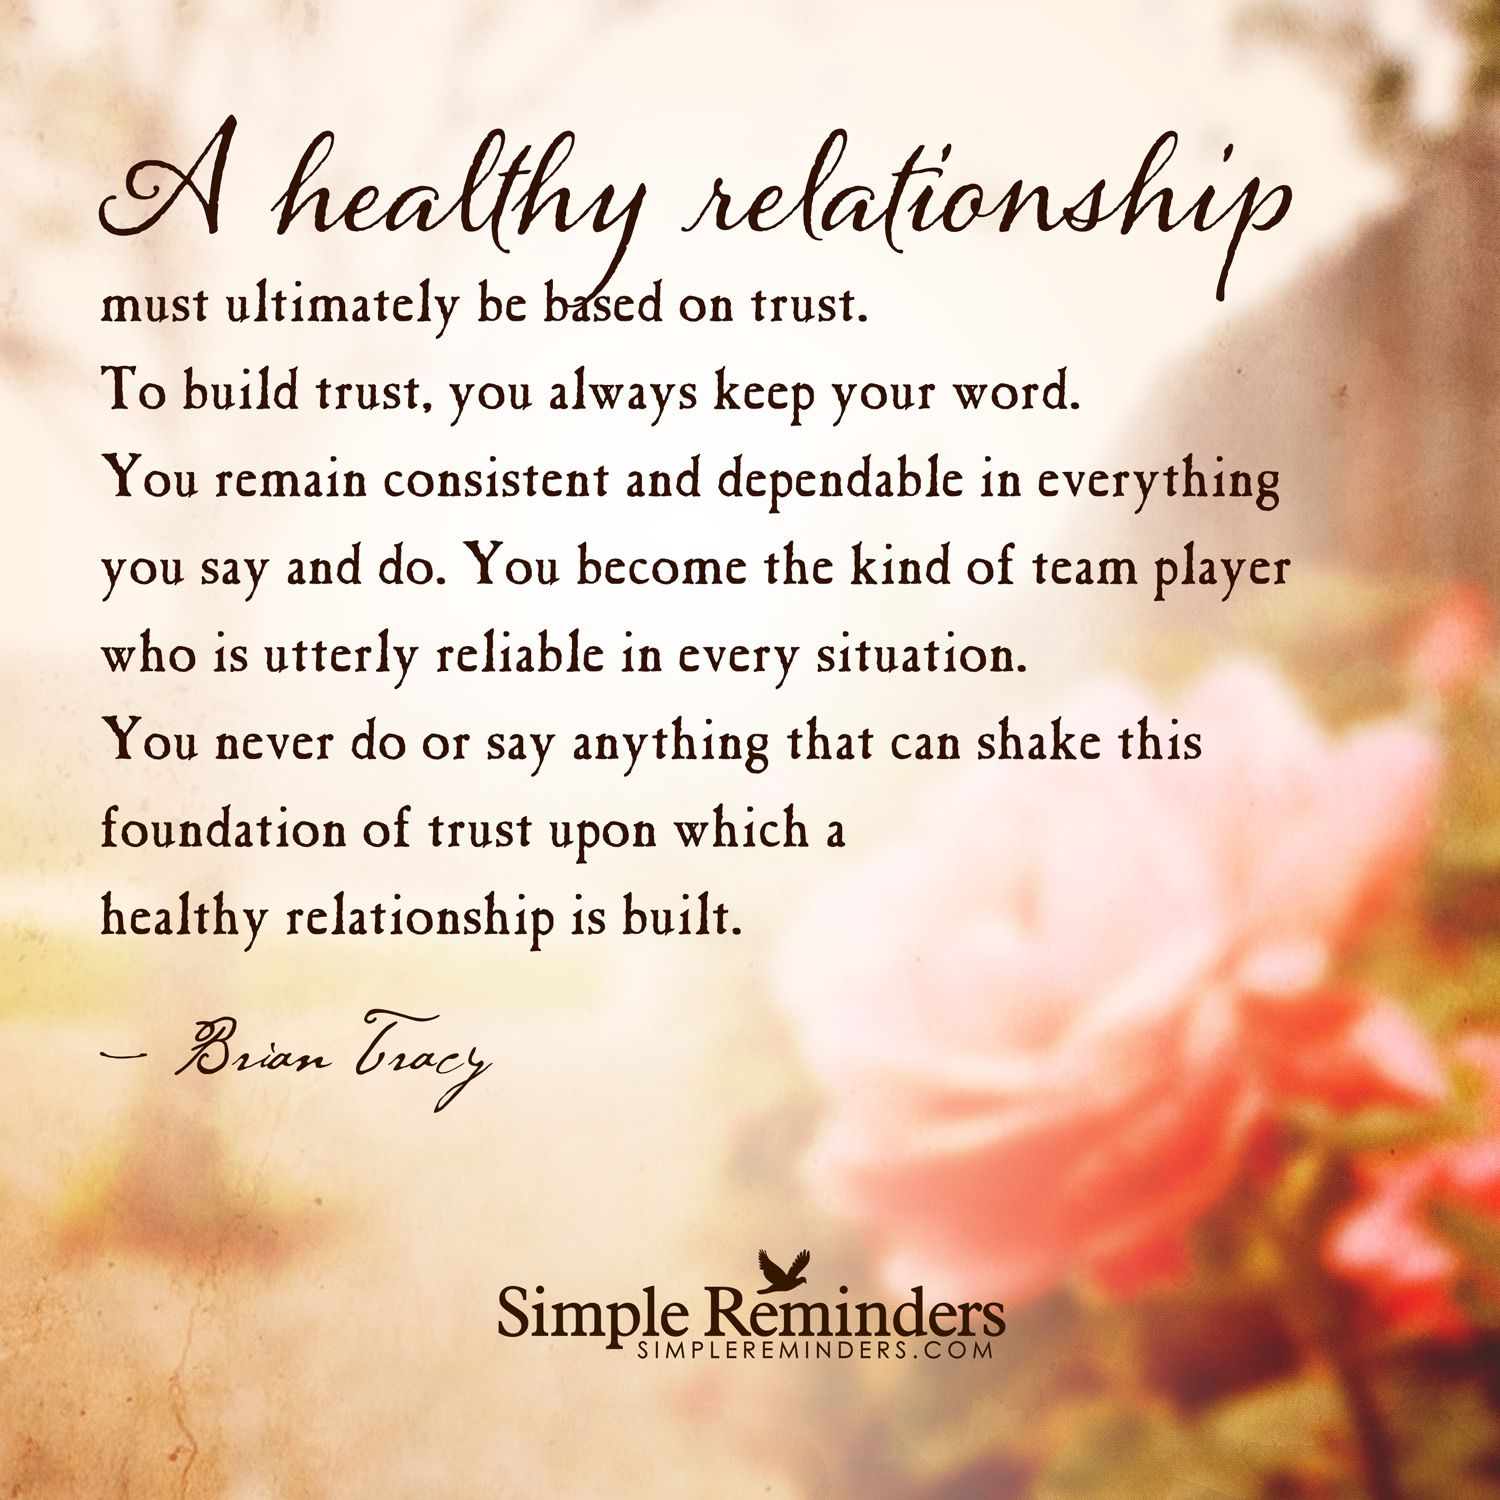 How To Build Trust In A Relationship Quotes